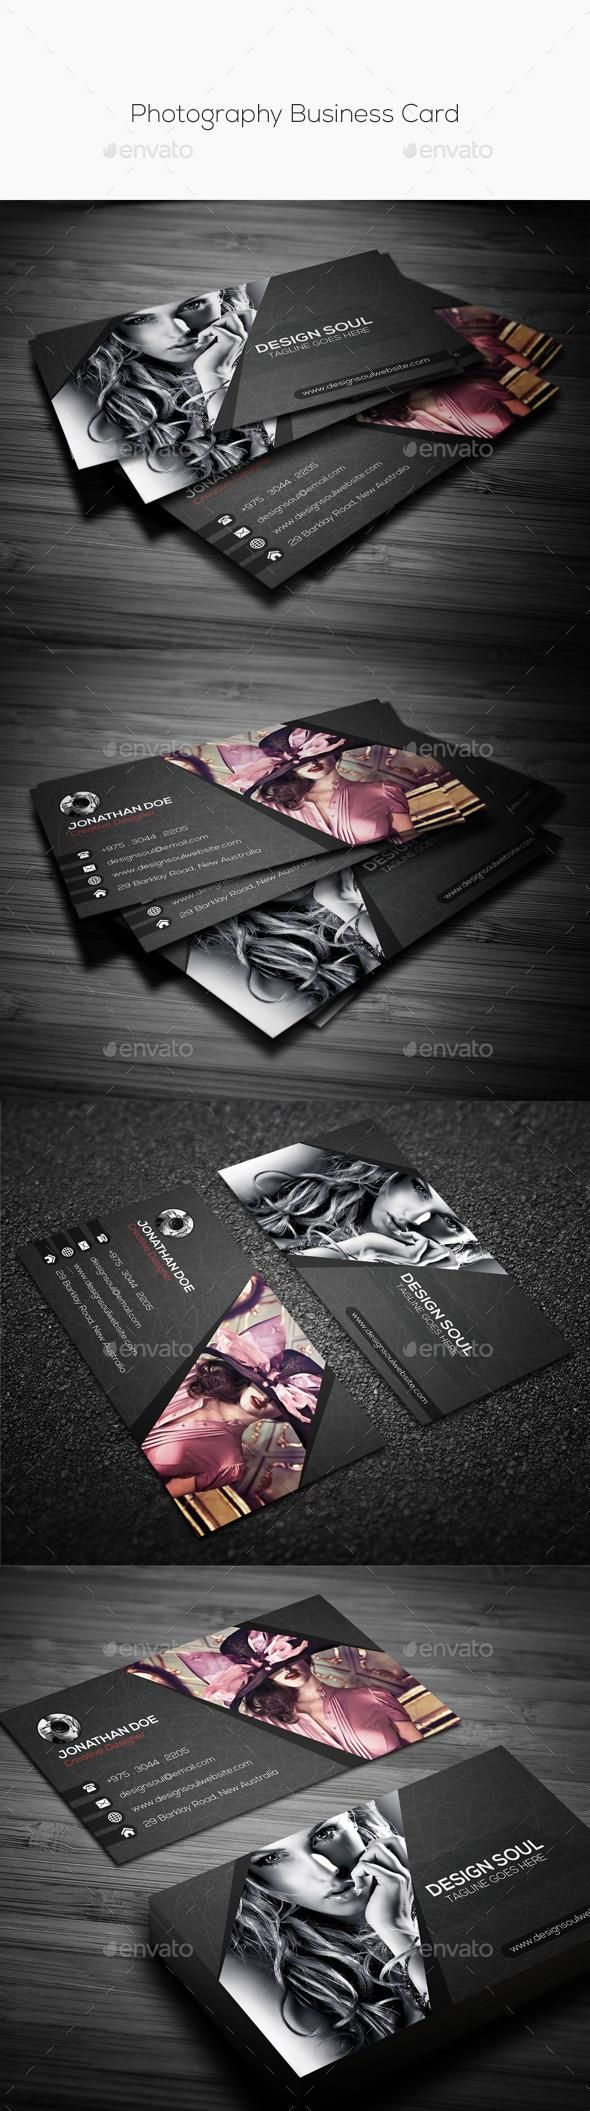 Photography Business Card Photography Business Cards Photography